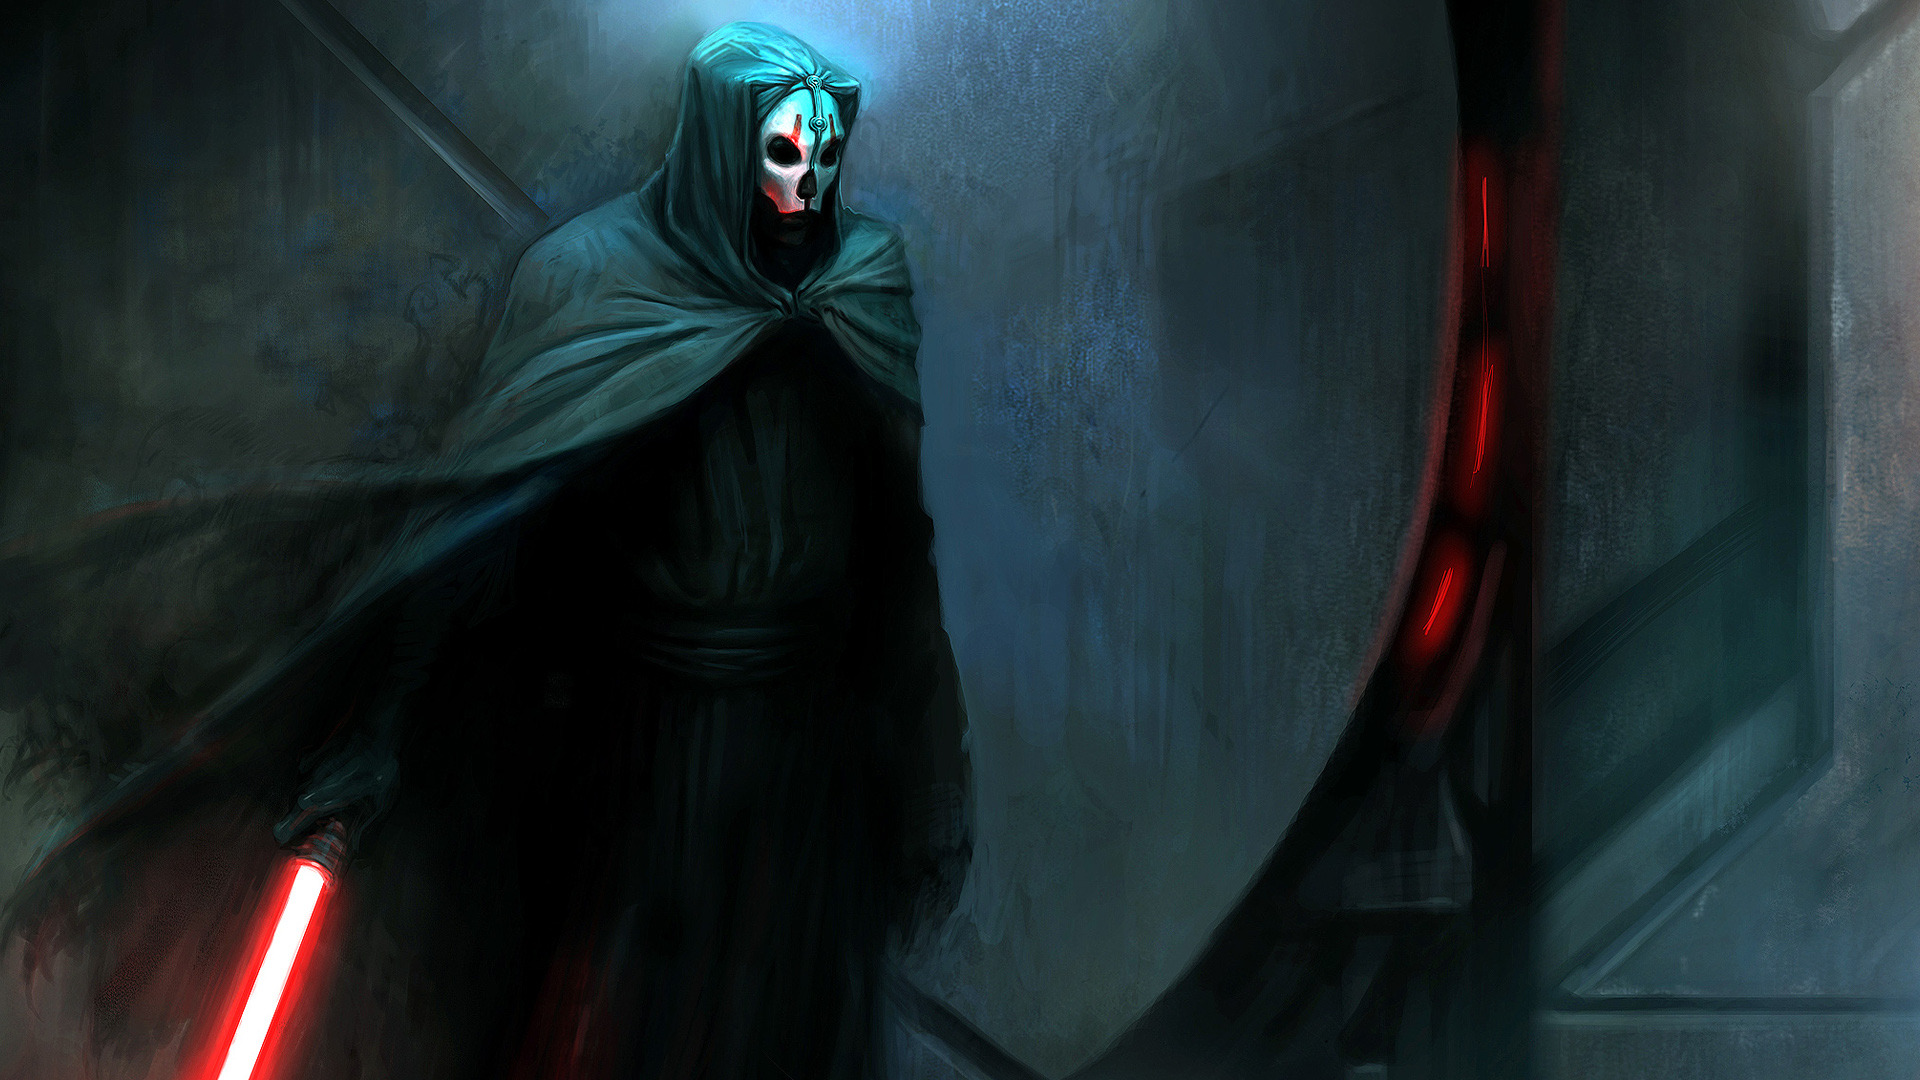 Knight - Star Wars - Knights of the Old Republic